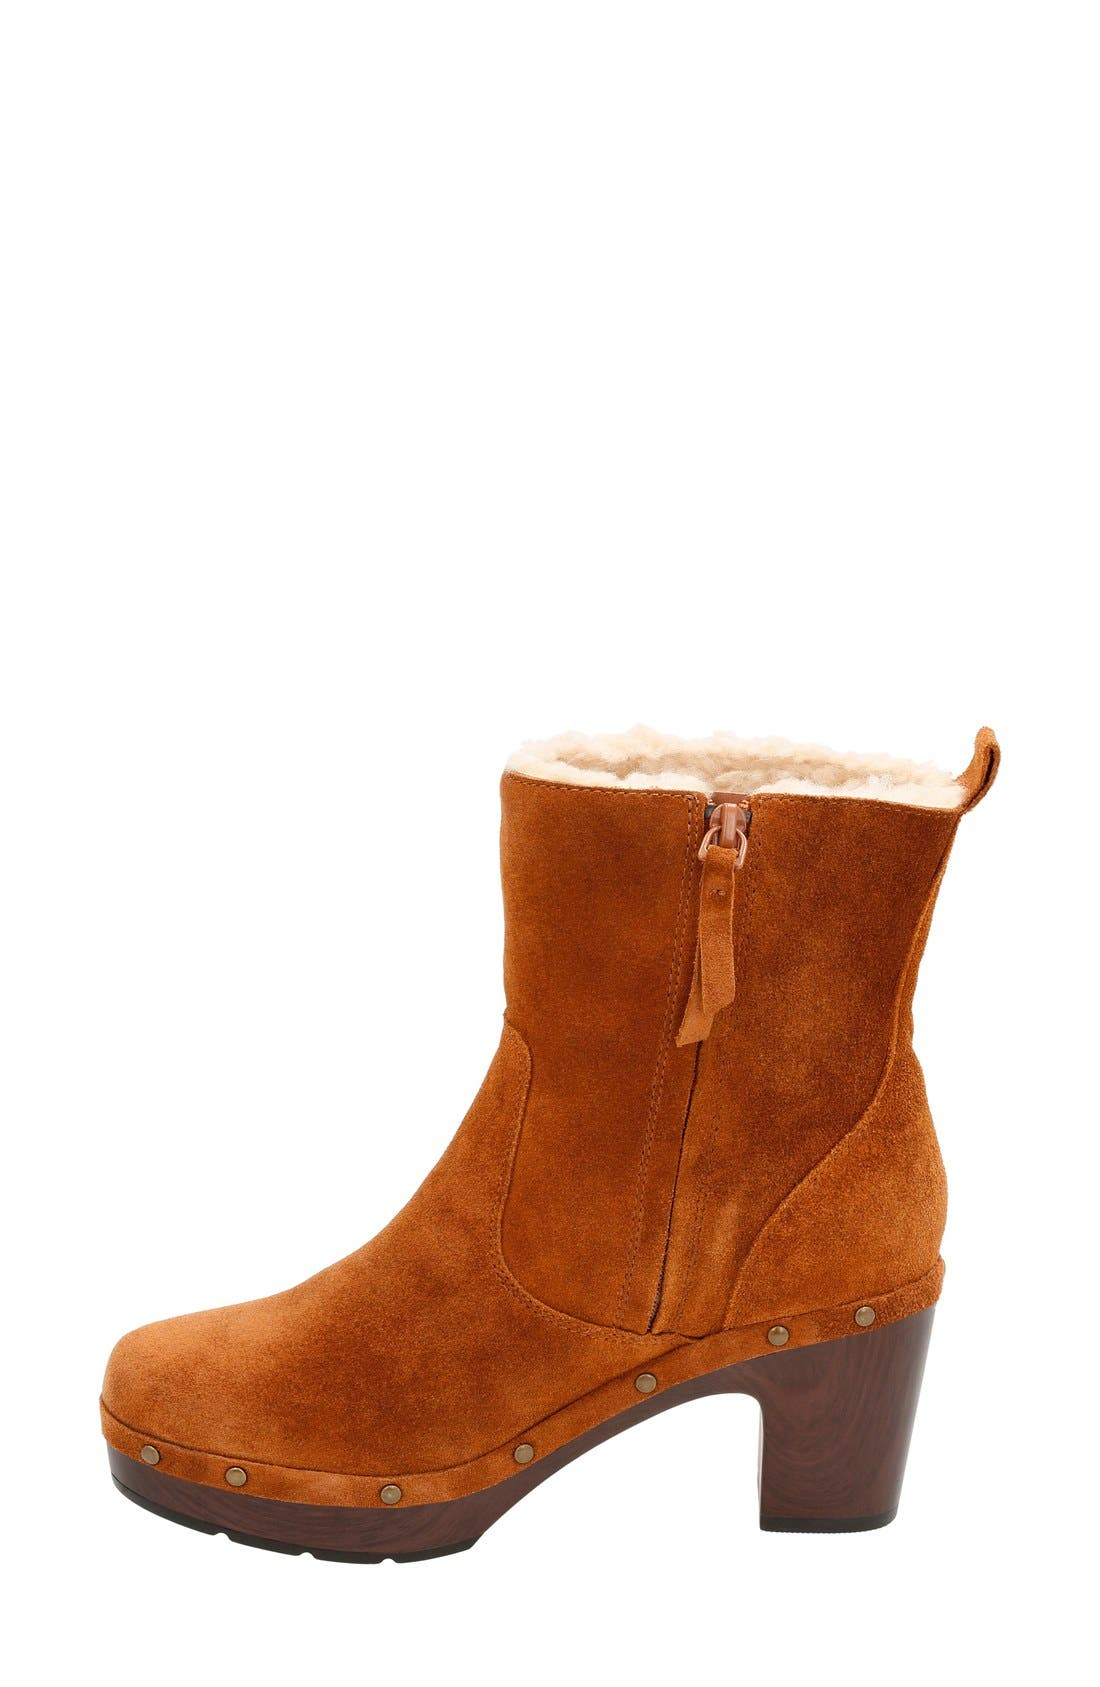 'Ledella Abby' Bootie,                             Alternate thumbnail 2, color,                             Tan Suede